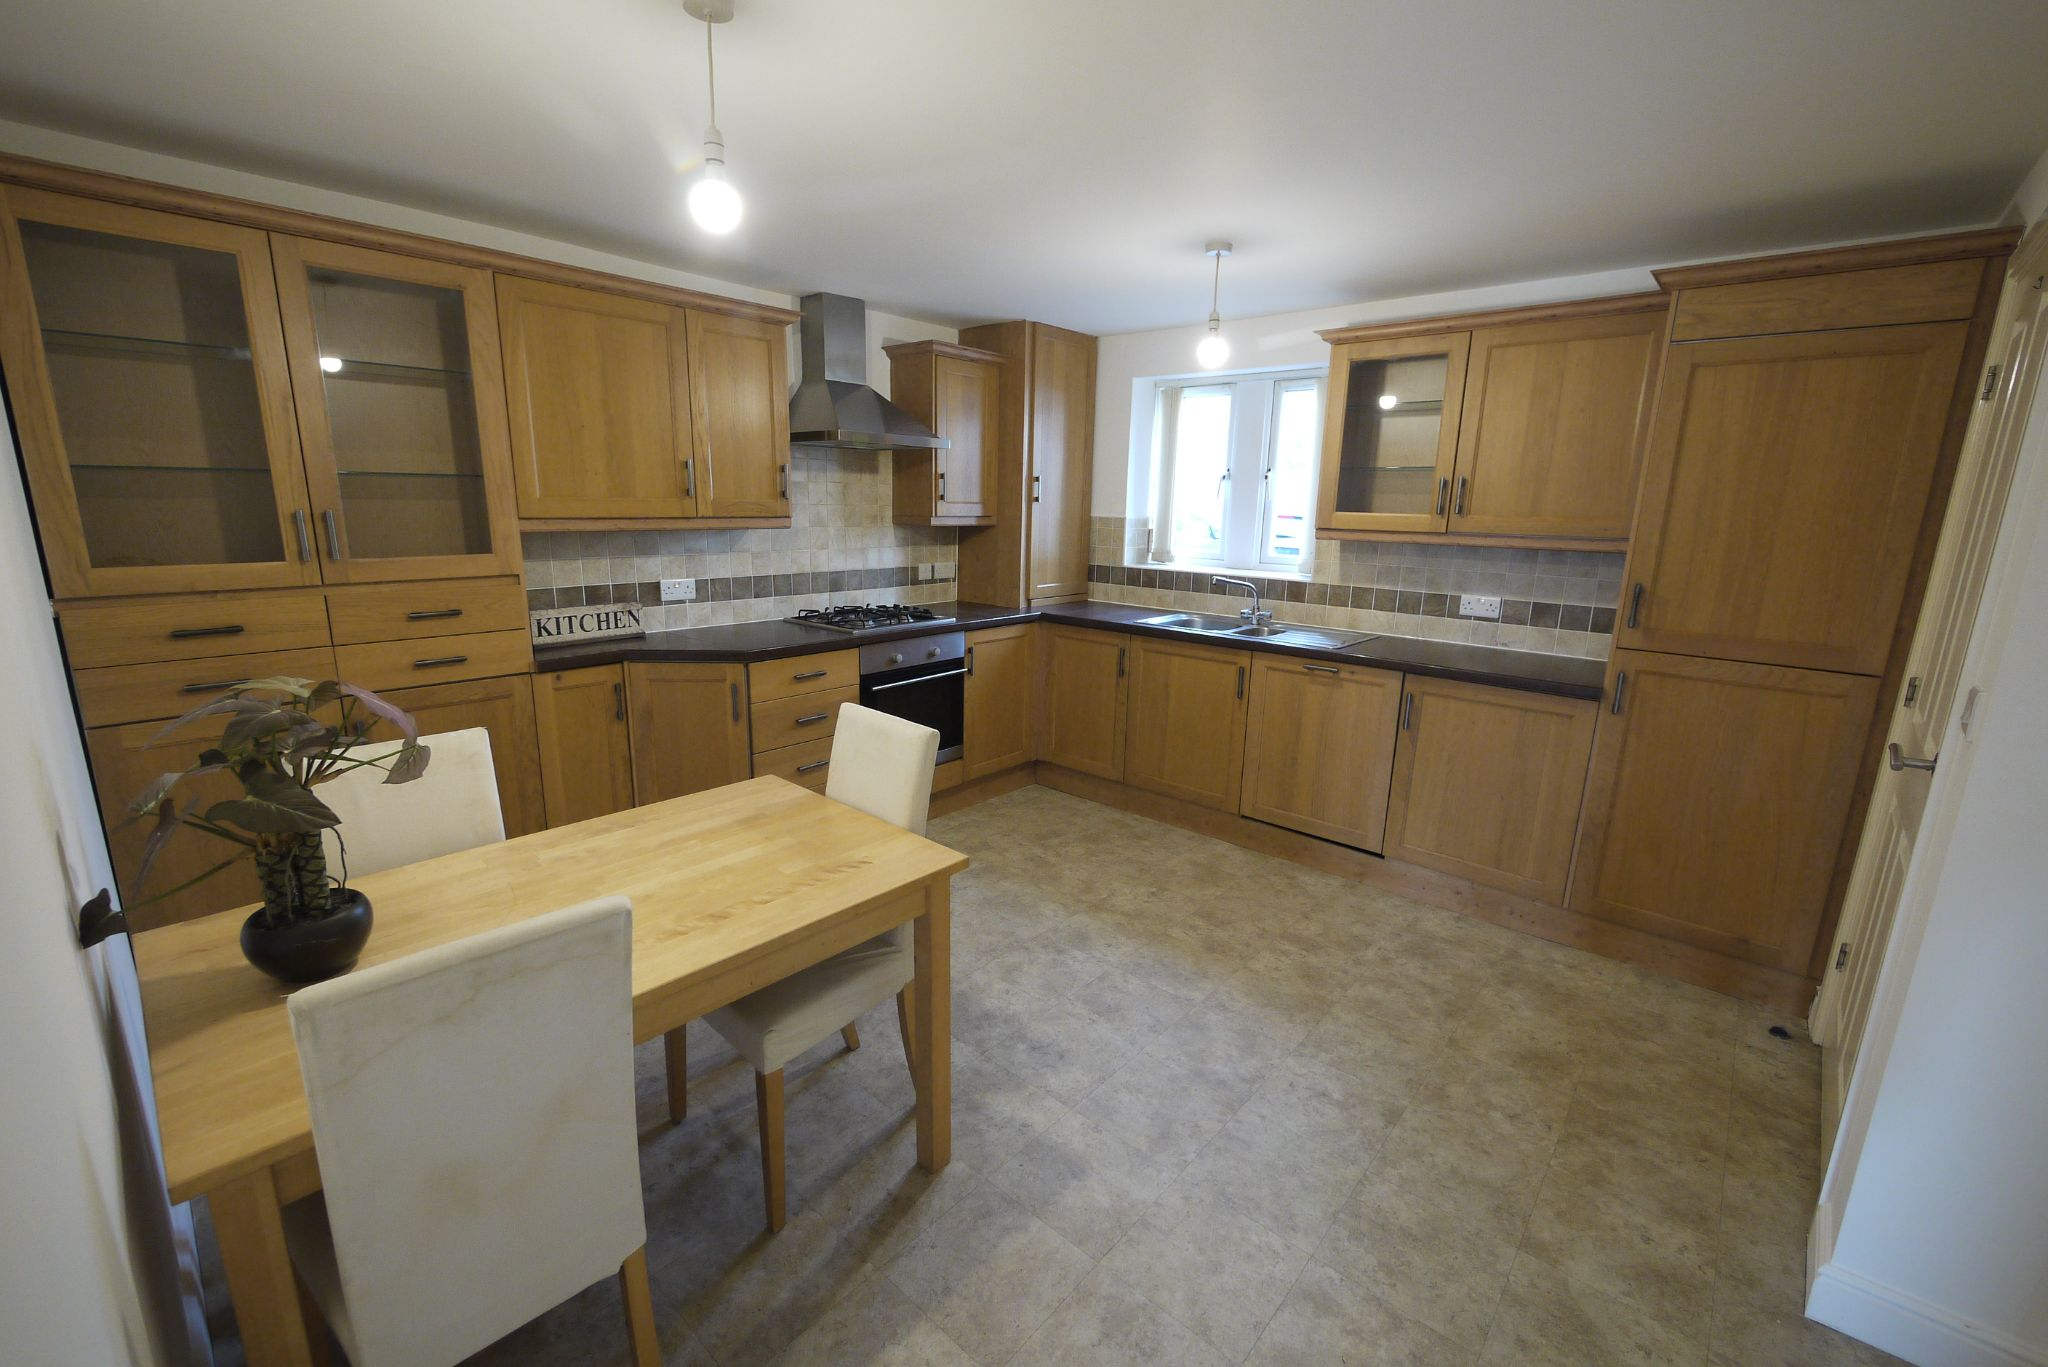 4 bedroom barn character property For Sale in Brighouse - Photograph 3.